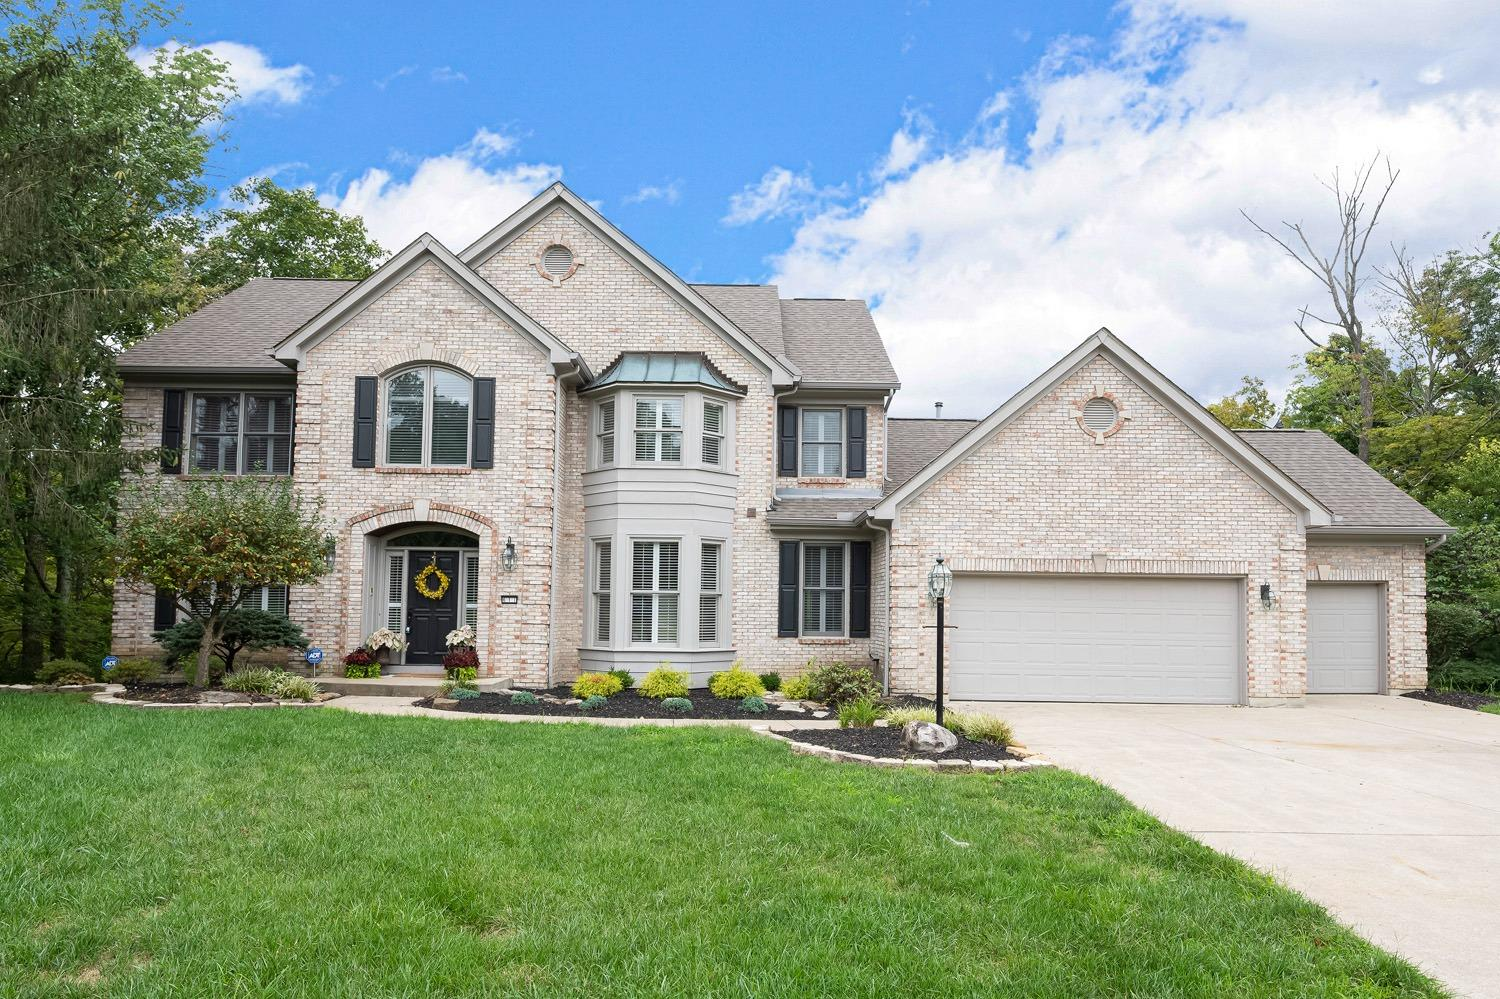 611 Valley Woods Court, Miami Twp, Ohio 45140, 4 Bedrooms Bedrooms, 9 Rooms Rooms,4 BathroomsBathrooms,Single Family Residence,For Sale,Valley Woods,1713852